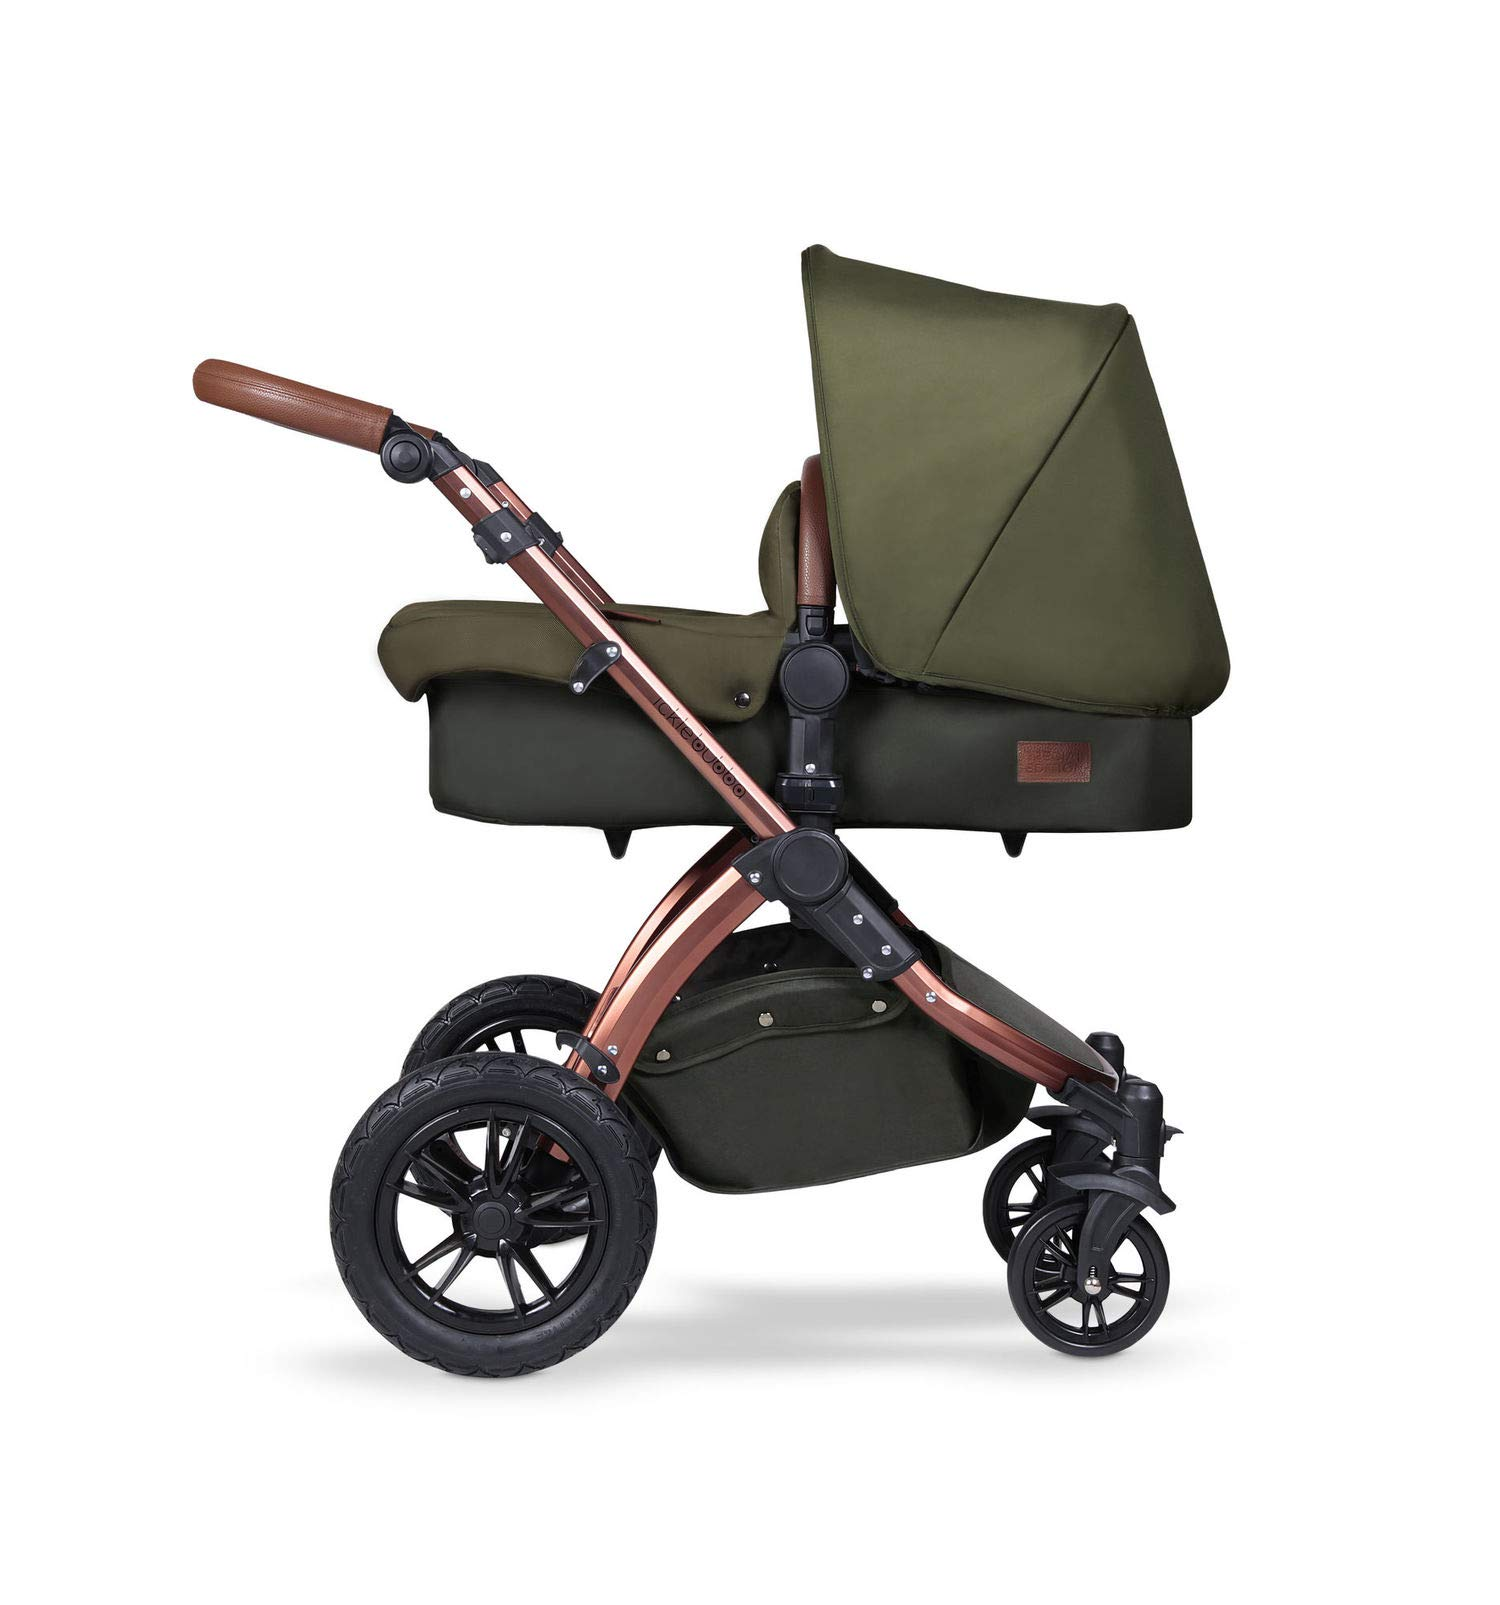 Ickle Bubba Stroller, Baby Travel System | Bundle incl Rear and Forward-Facing Pushchair, Car Seat, ISOFIX Base, Carrycot, Footmuff and Raincover | Stomp V4 Special Edition, Woodland Chrome Ickle Bubba DO-IT-ALL TRAVEL SYSTEM: Features luxury carrycot, reversible pushchair, and Galaxy Group 0+ lined car seat and ISOFIX base. Easy-click release allows for quick transitions between car and stroller LIGHTWEIGHT, QUICK FOLD: 6.5kg chassis with wheels. BUILT IN STORAGE: Matching stow away bottom basket with high sides for increased storage; changing bag with shoulder strap and mats included FORWARD AND PARENT FACING TODDLER SEAT: The multi-position recline allows your child to lie comfortably for naps or sit upright to take in the sights. 3